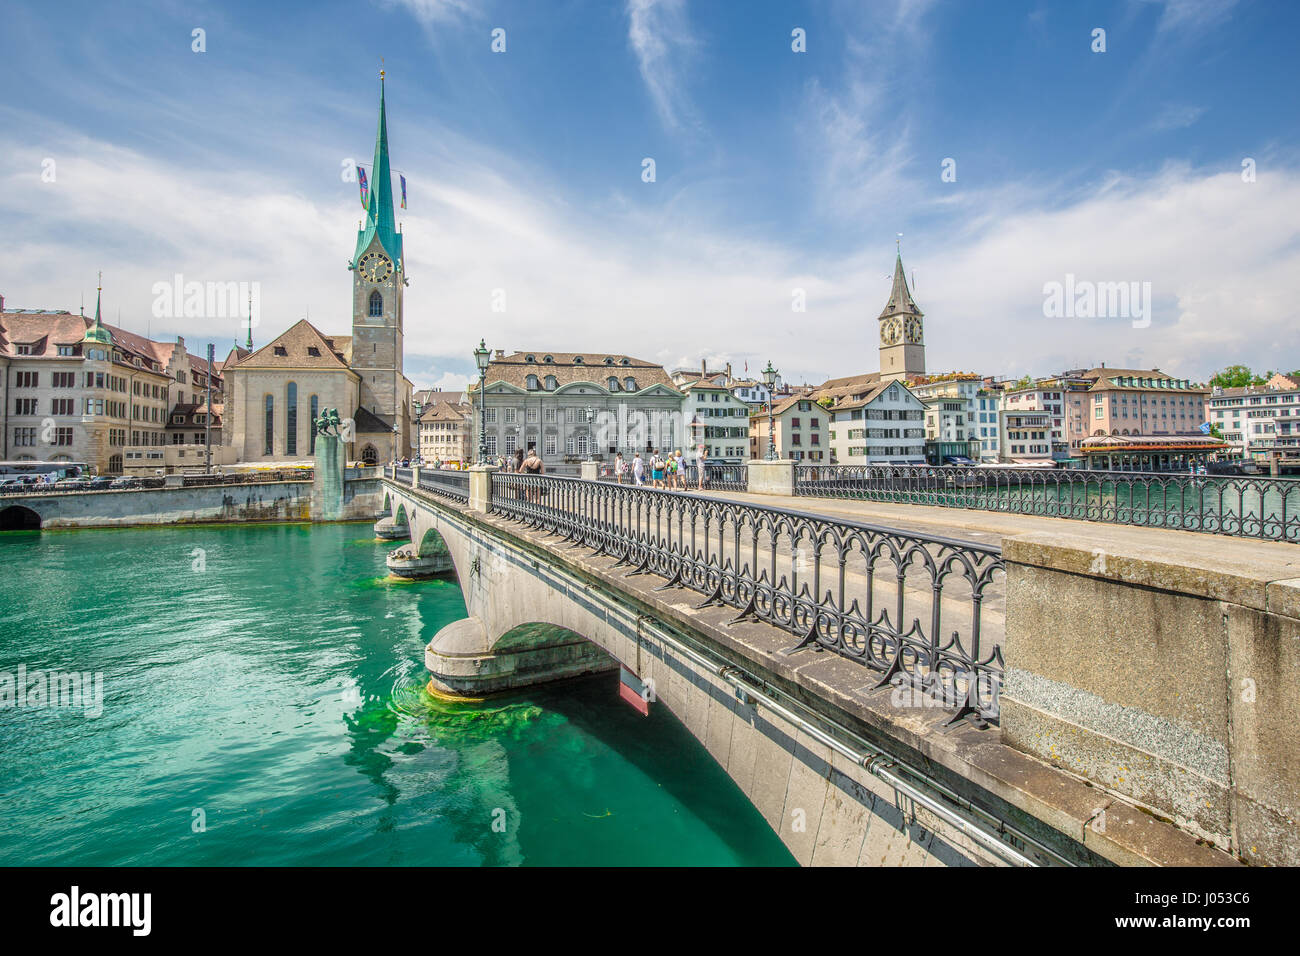 Panorama view of historic city center of Zurich with famous Fraumunster Church and Munsterbucke crossing river Limmat Stock Photo